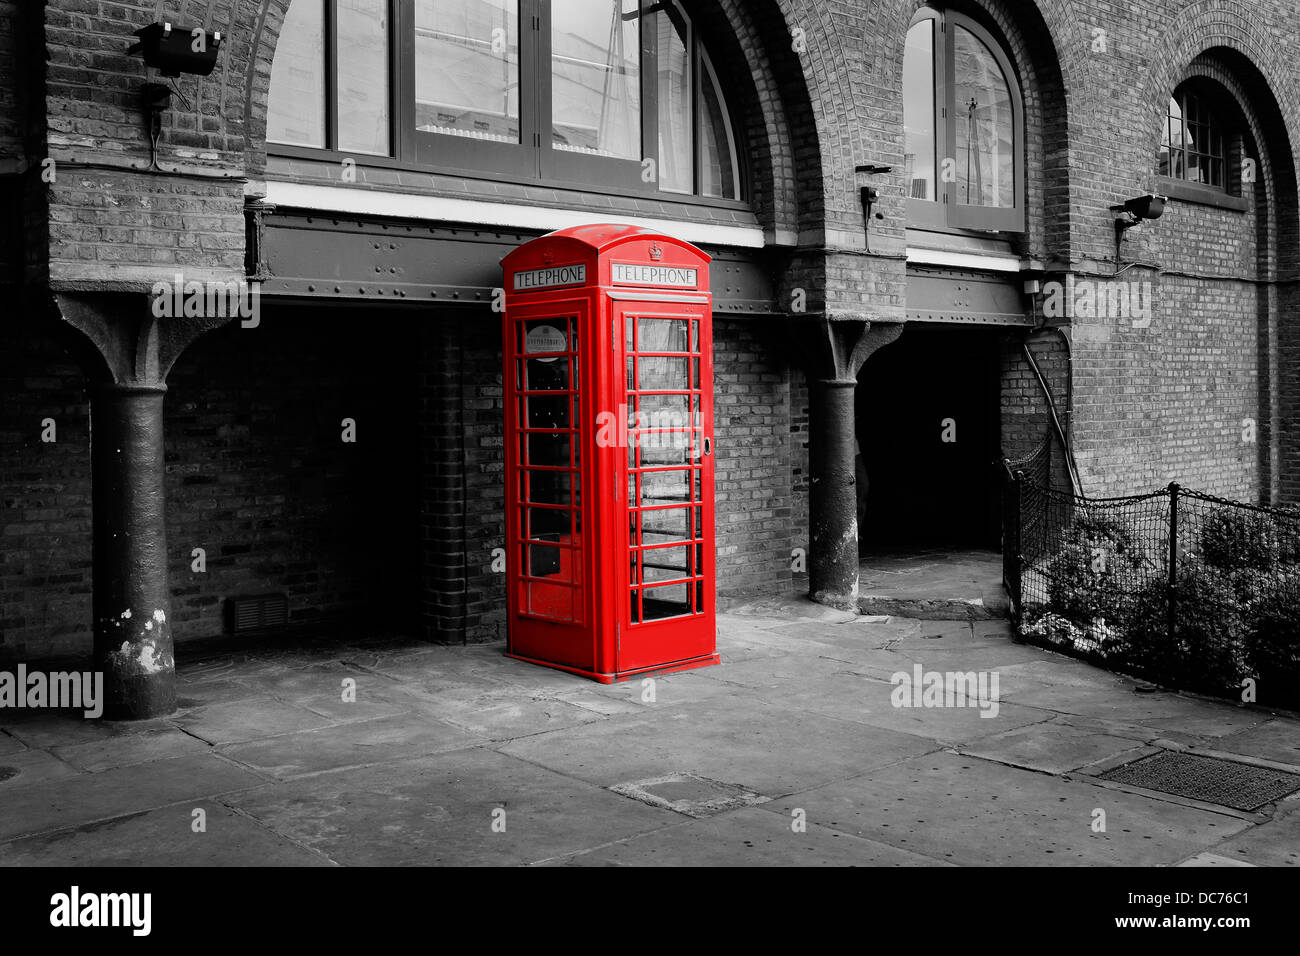 Red telephone box in monochrome image. London UK Example of use of Advanced Filter (partial colour red) of Fujifilm - Stock Image